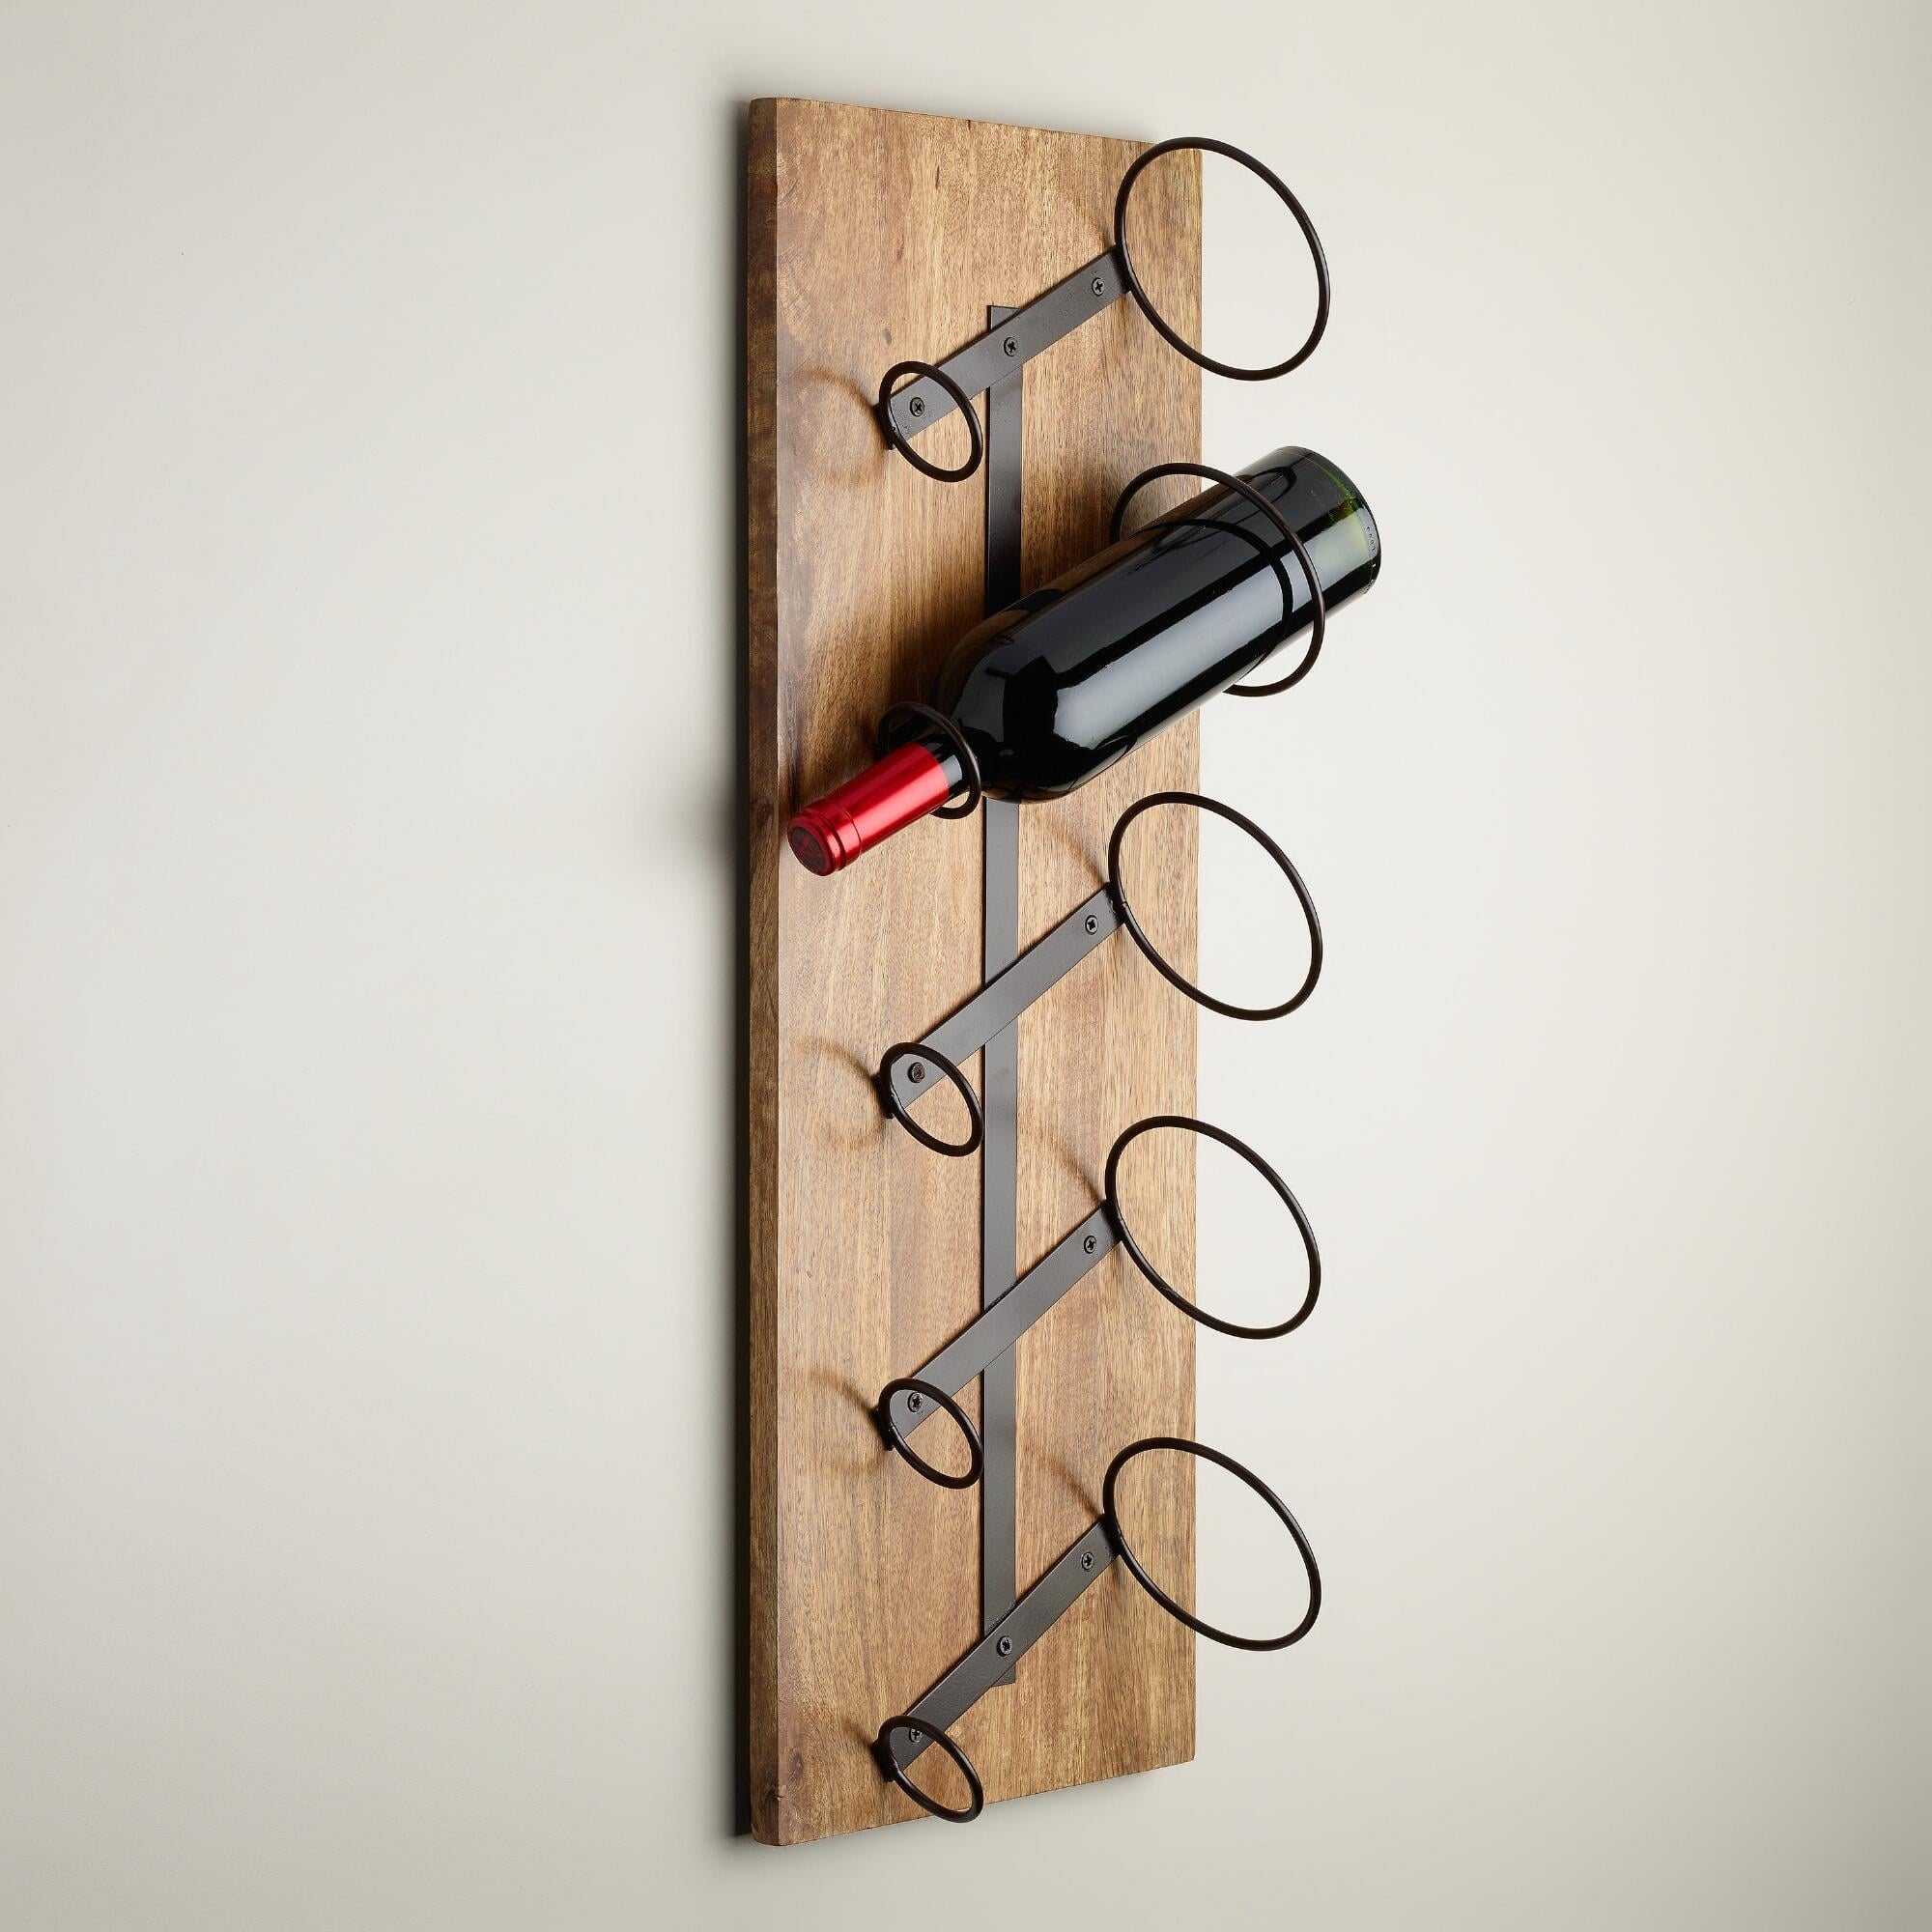 Metal Wall Wine Rack Bottle Holder Ideas On Foter